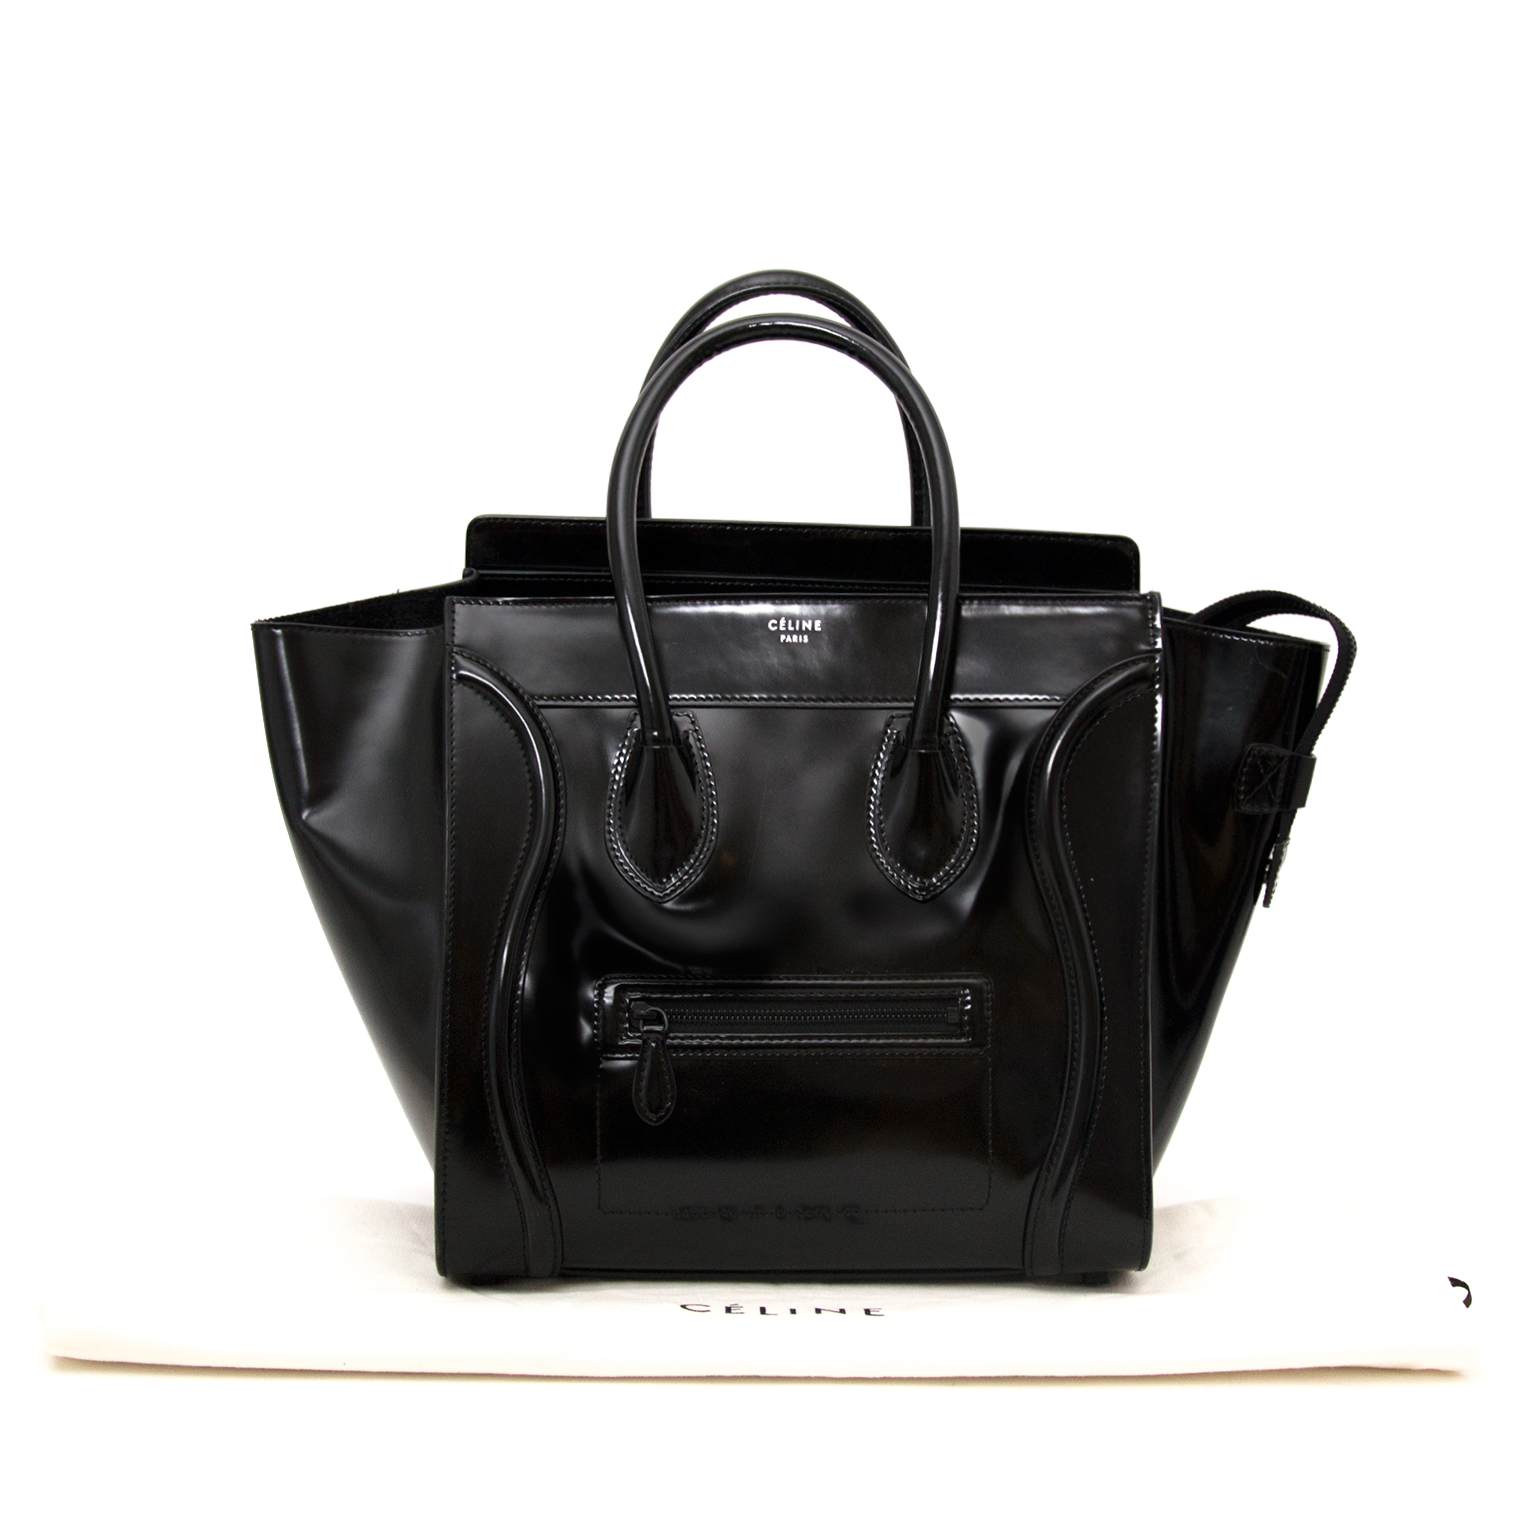 5e89ff6ce7 ... Céline Patent Leather Luggage shop your luxury bag at the best price  onmine webshop labellov.com